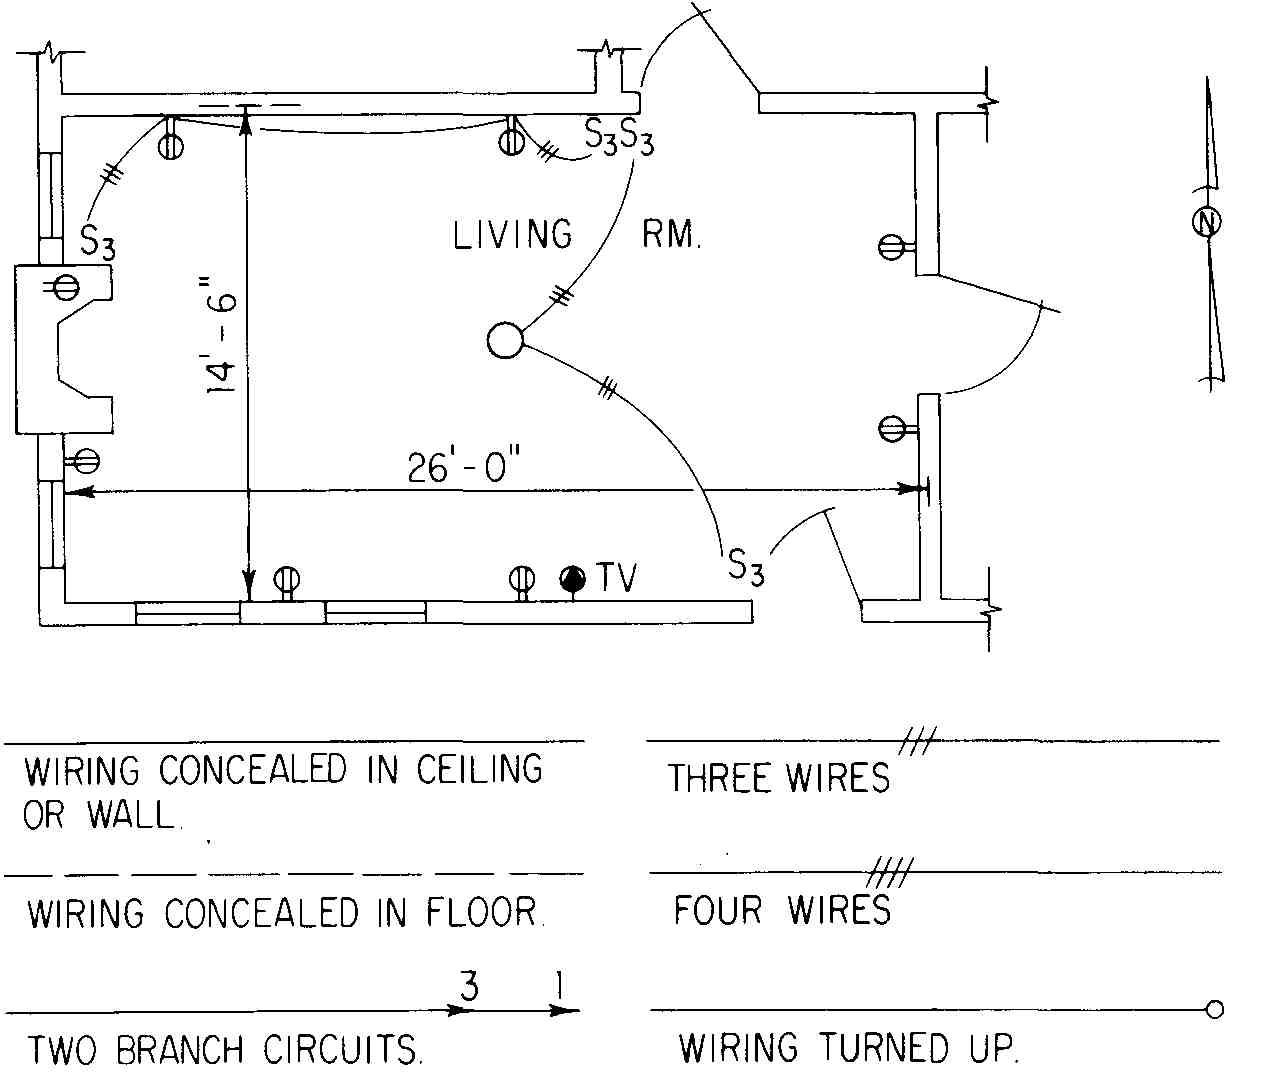 uk telephone plug wiring diagram minn kota power drive 55 electrical drawing for architectural plans